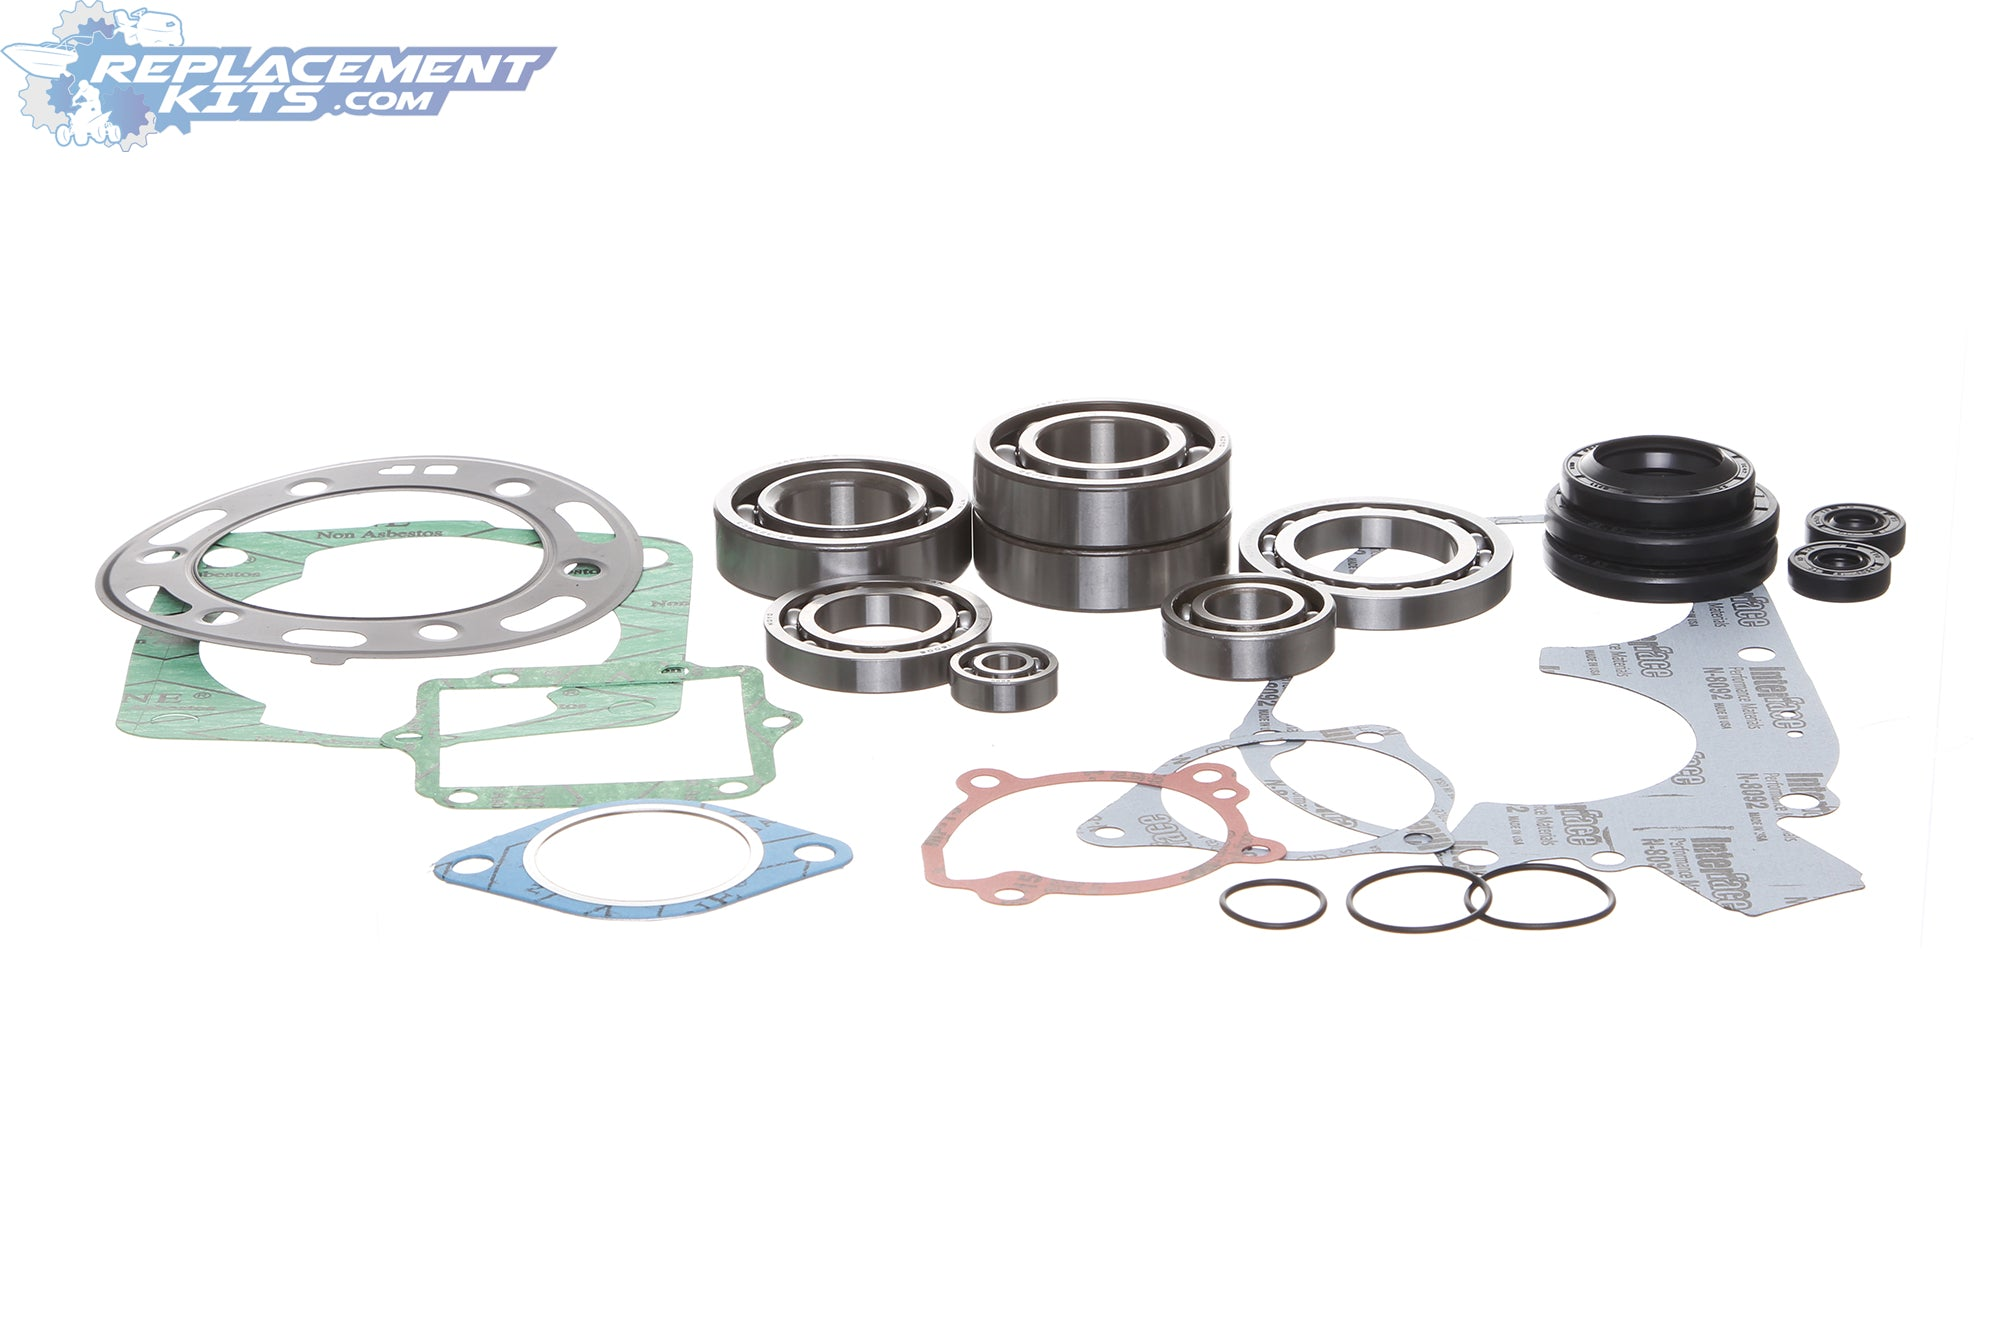 Polaris 400 400L Complete Engine Gasket, Bearing & Oil Seal Rebuild Kit